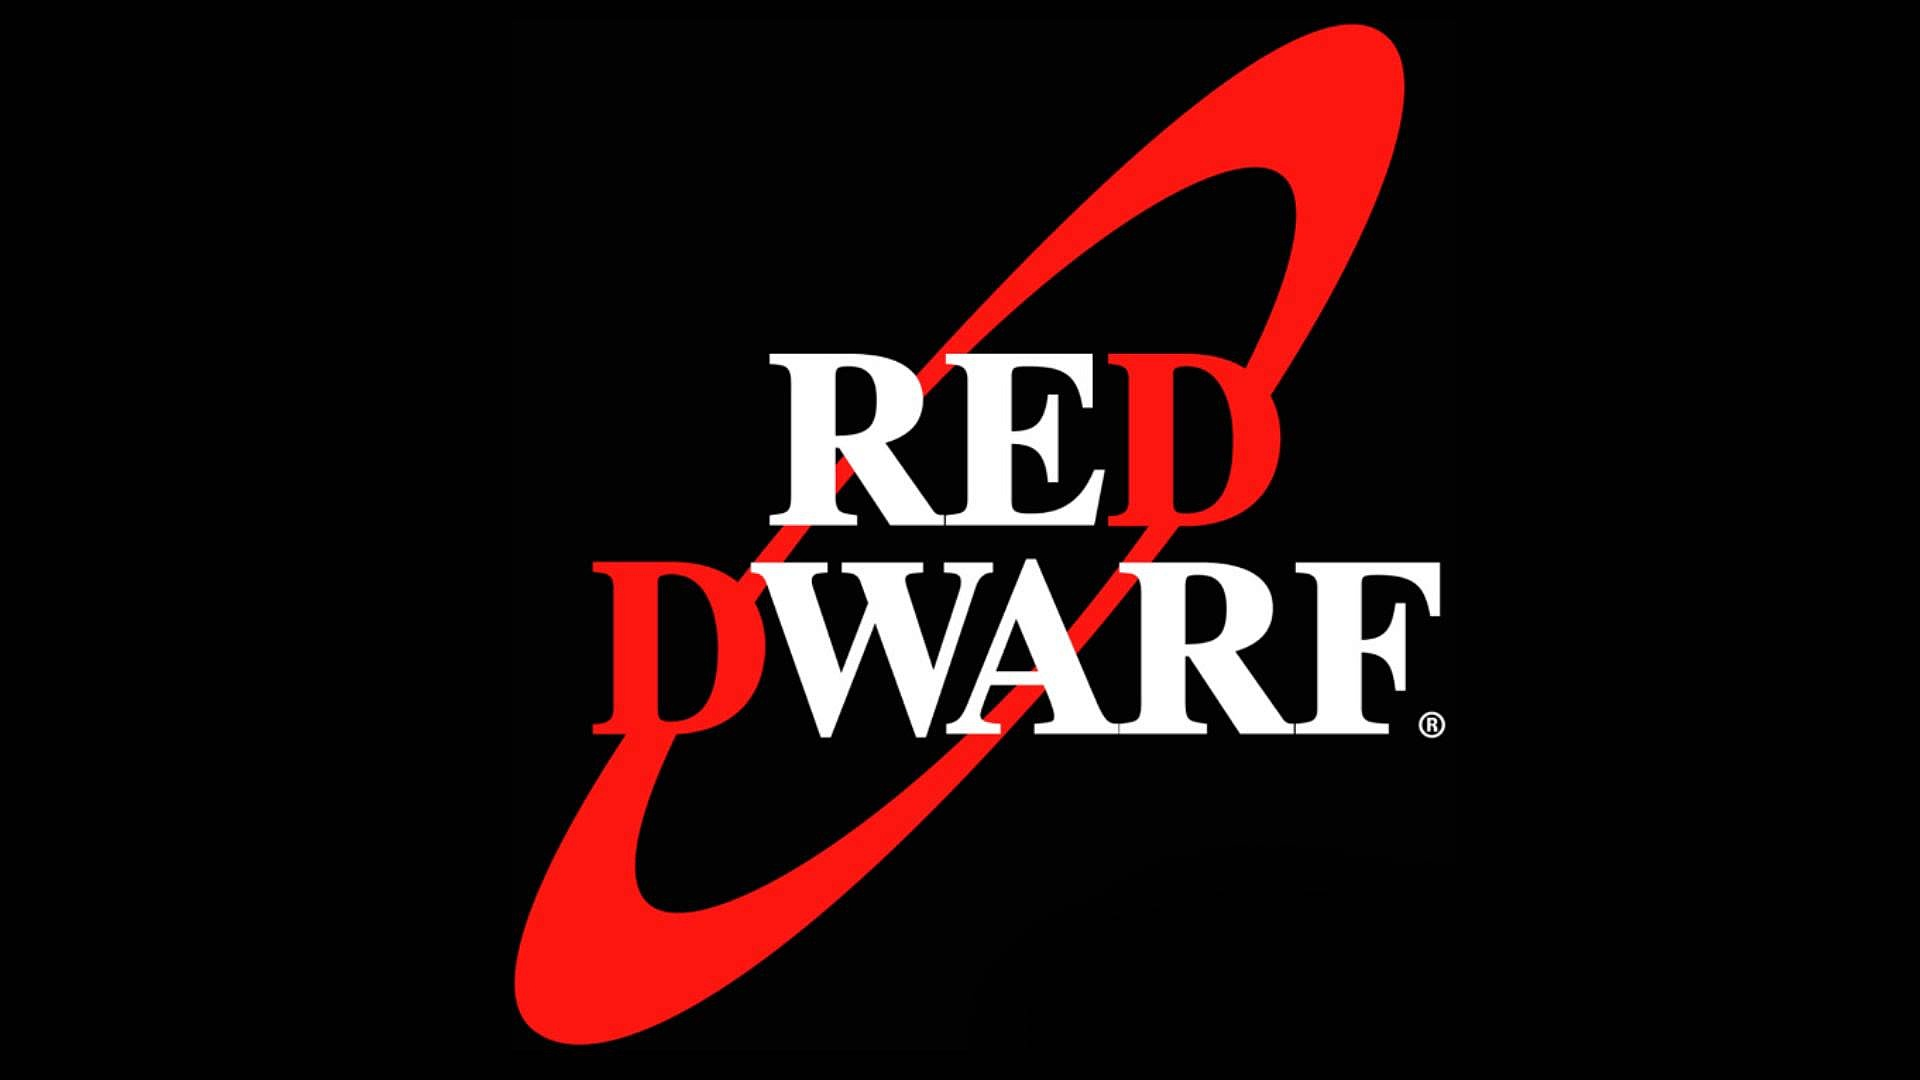 Effects Influence: Red Dwarf